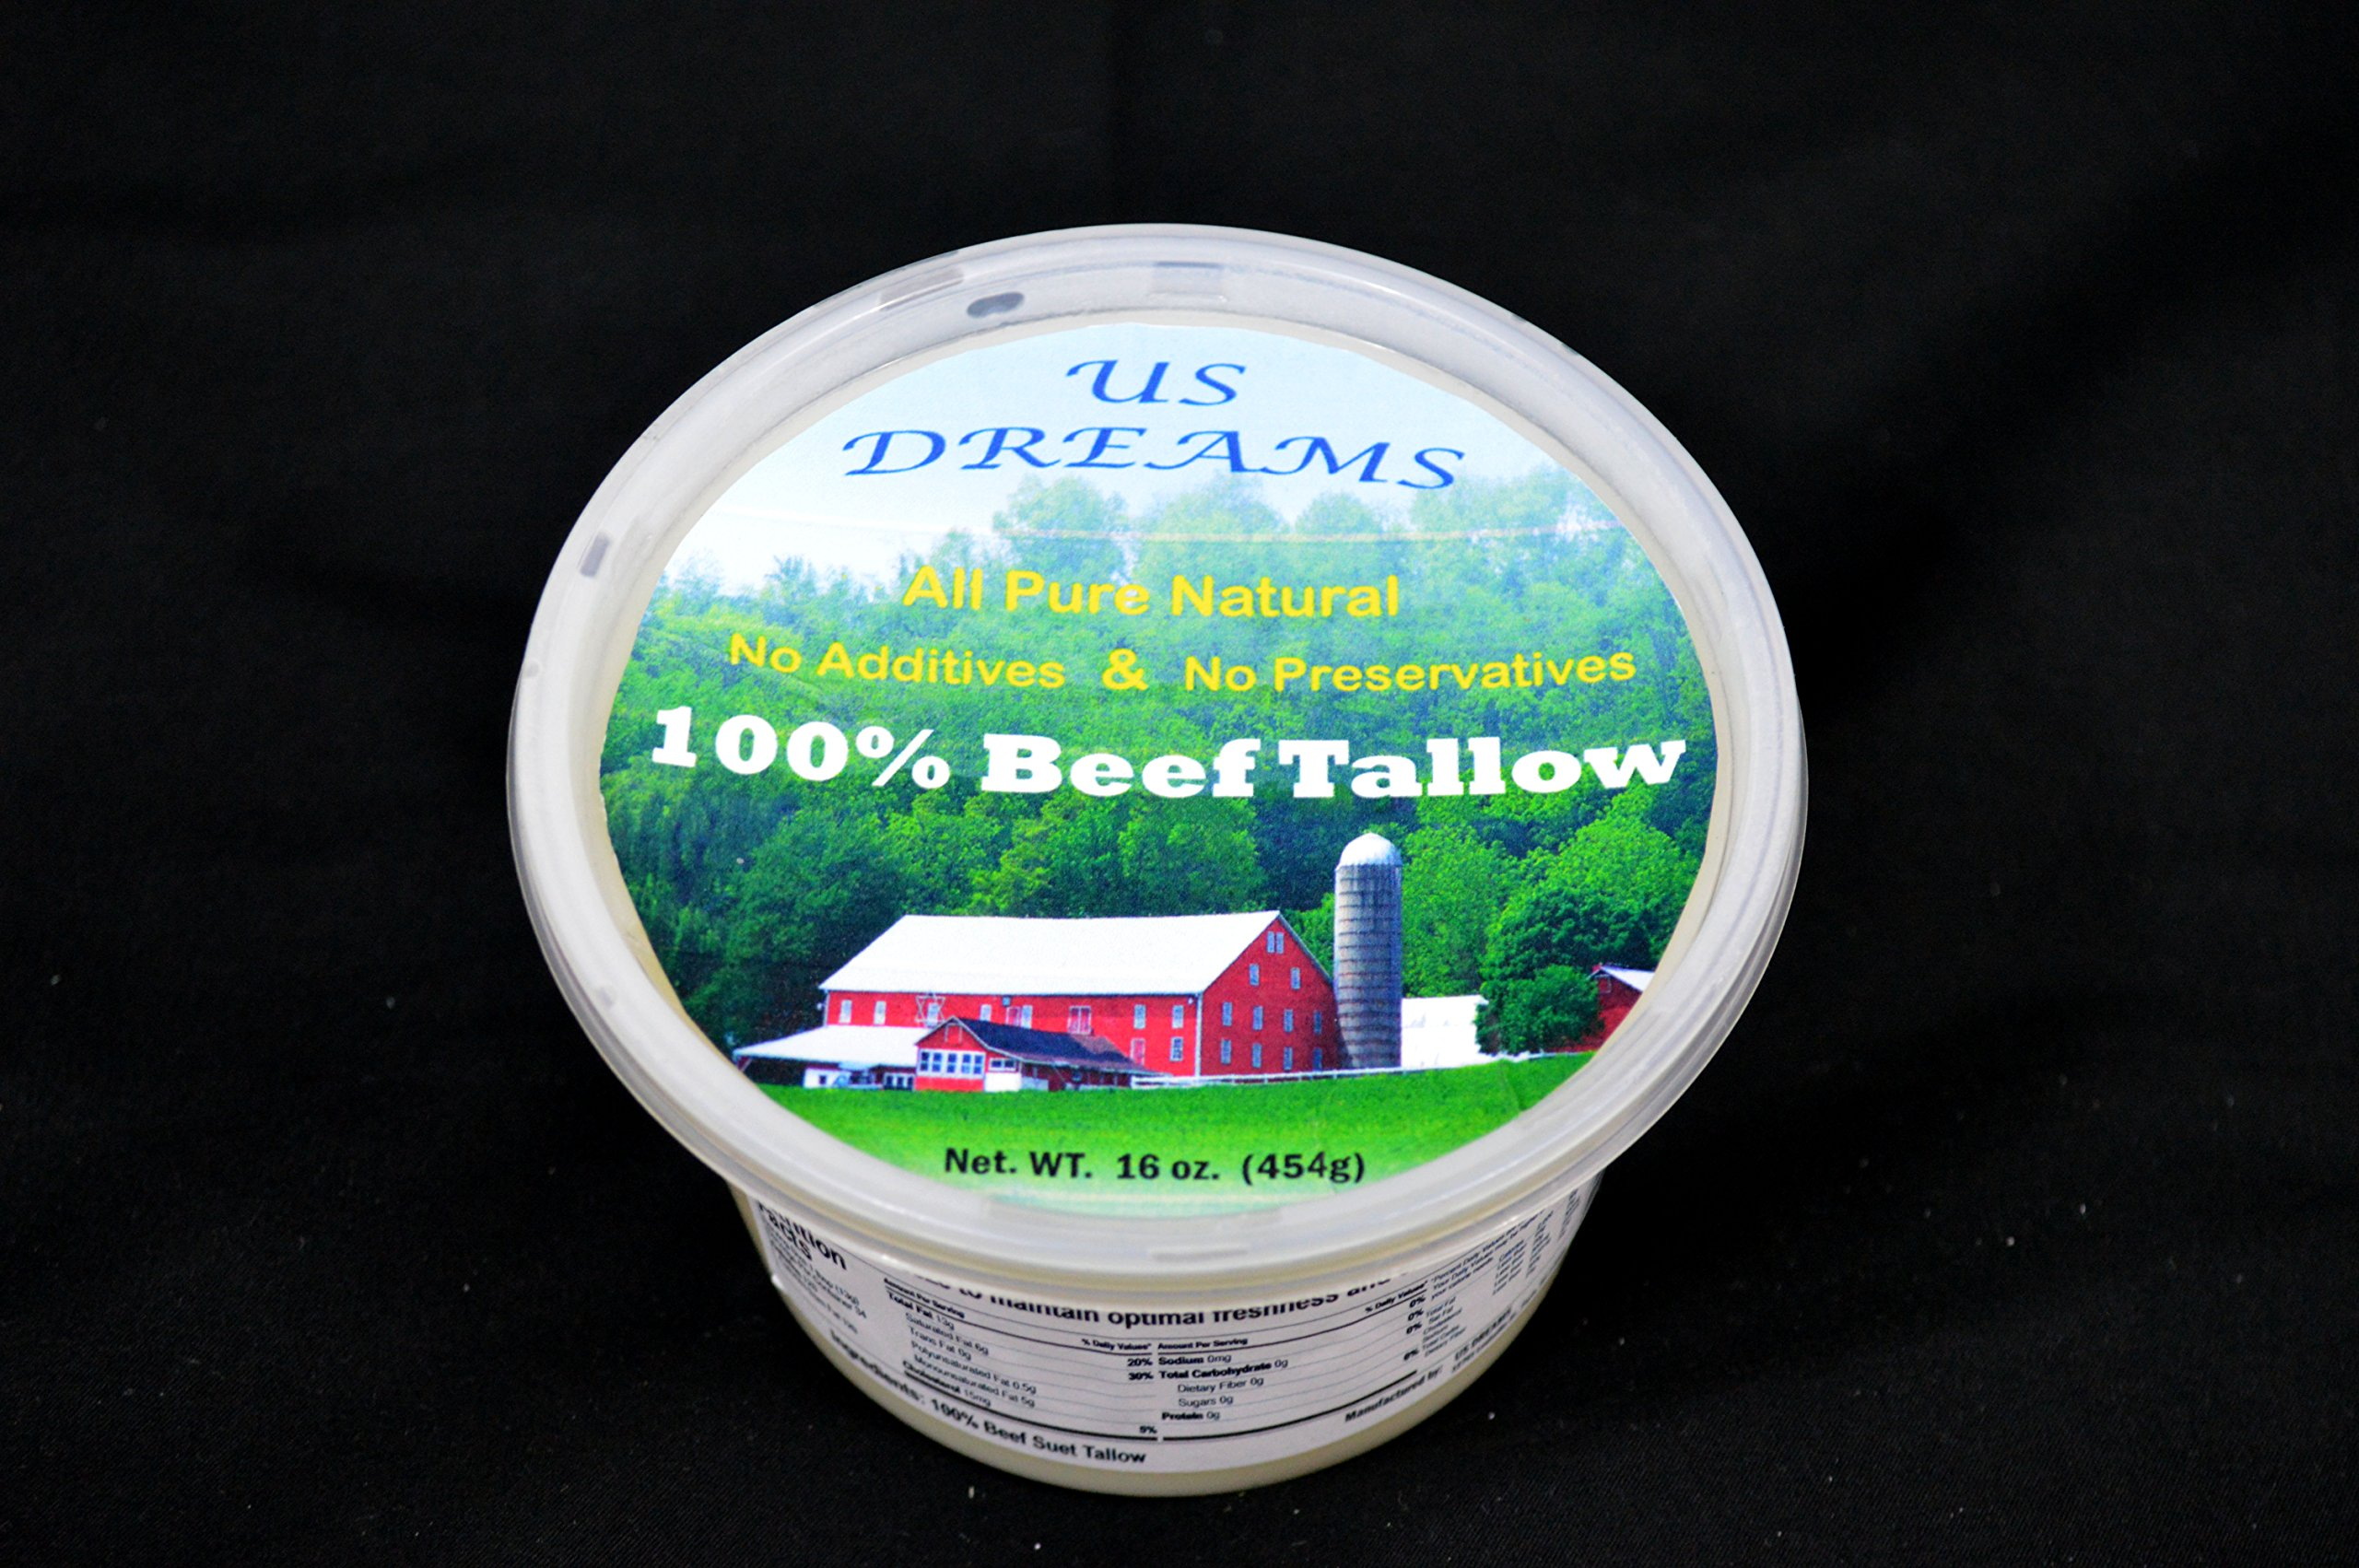 100% Grass Fed Beef Tallow Five 1 lb. containers (16 oz.) one pound total of five pounds